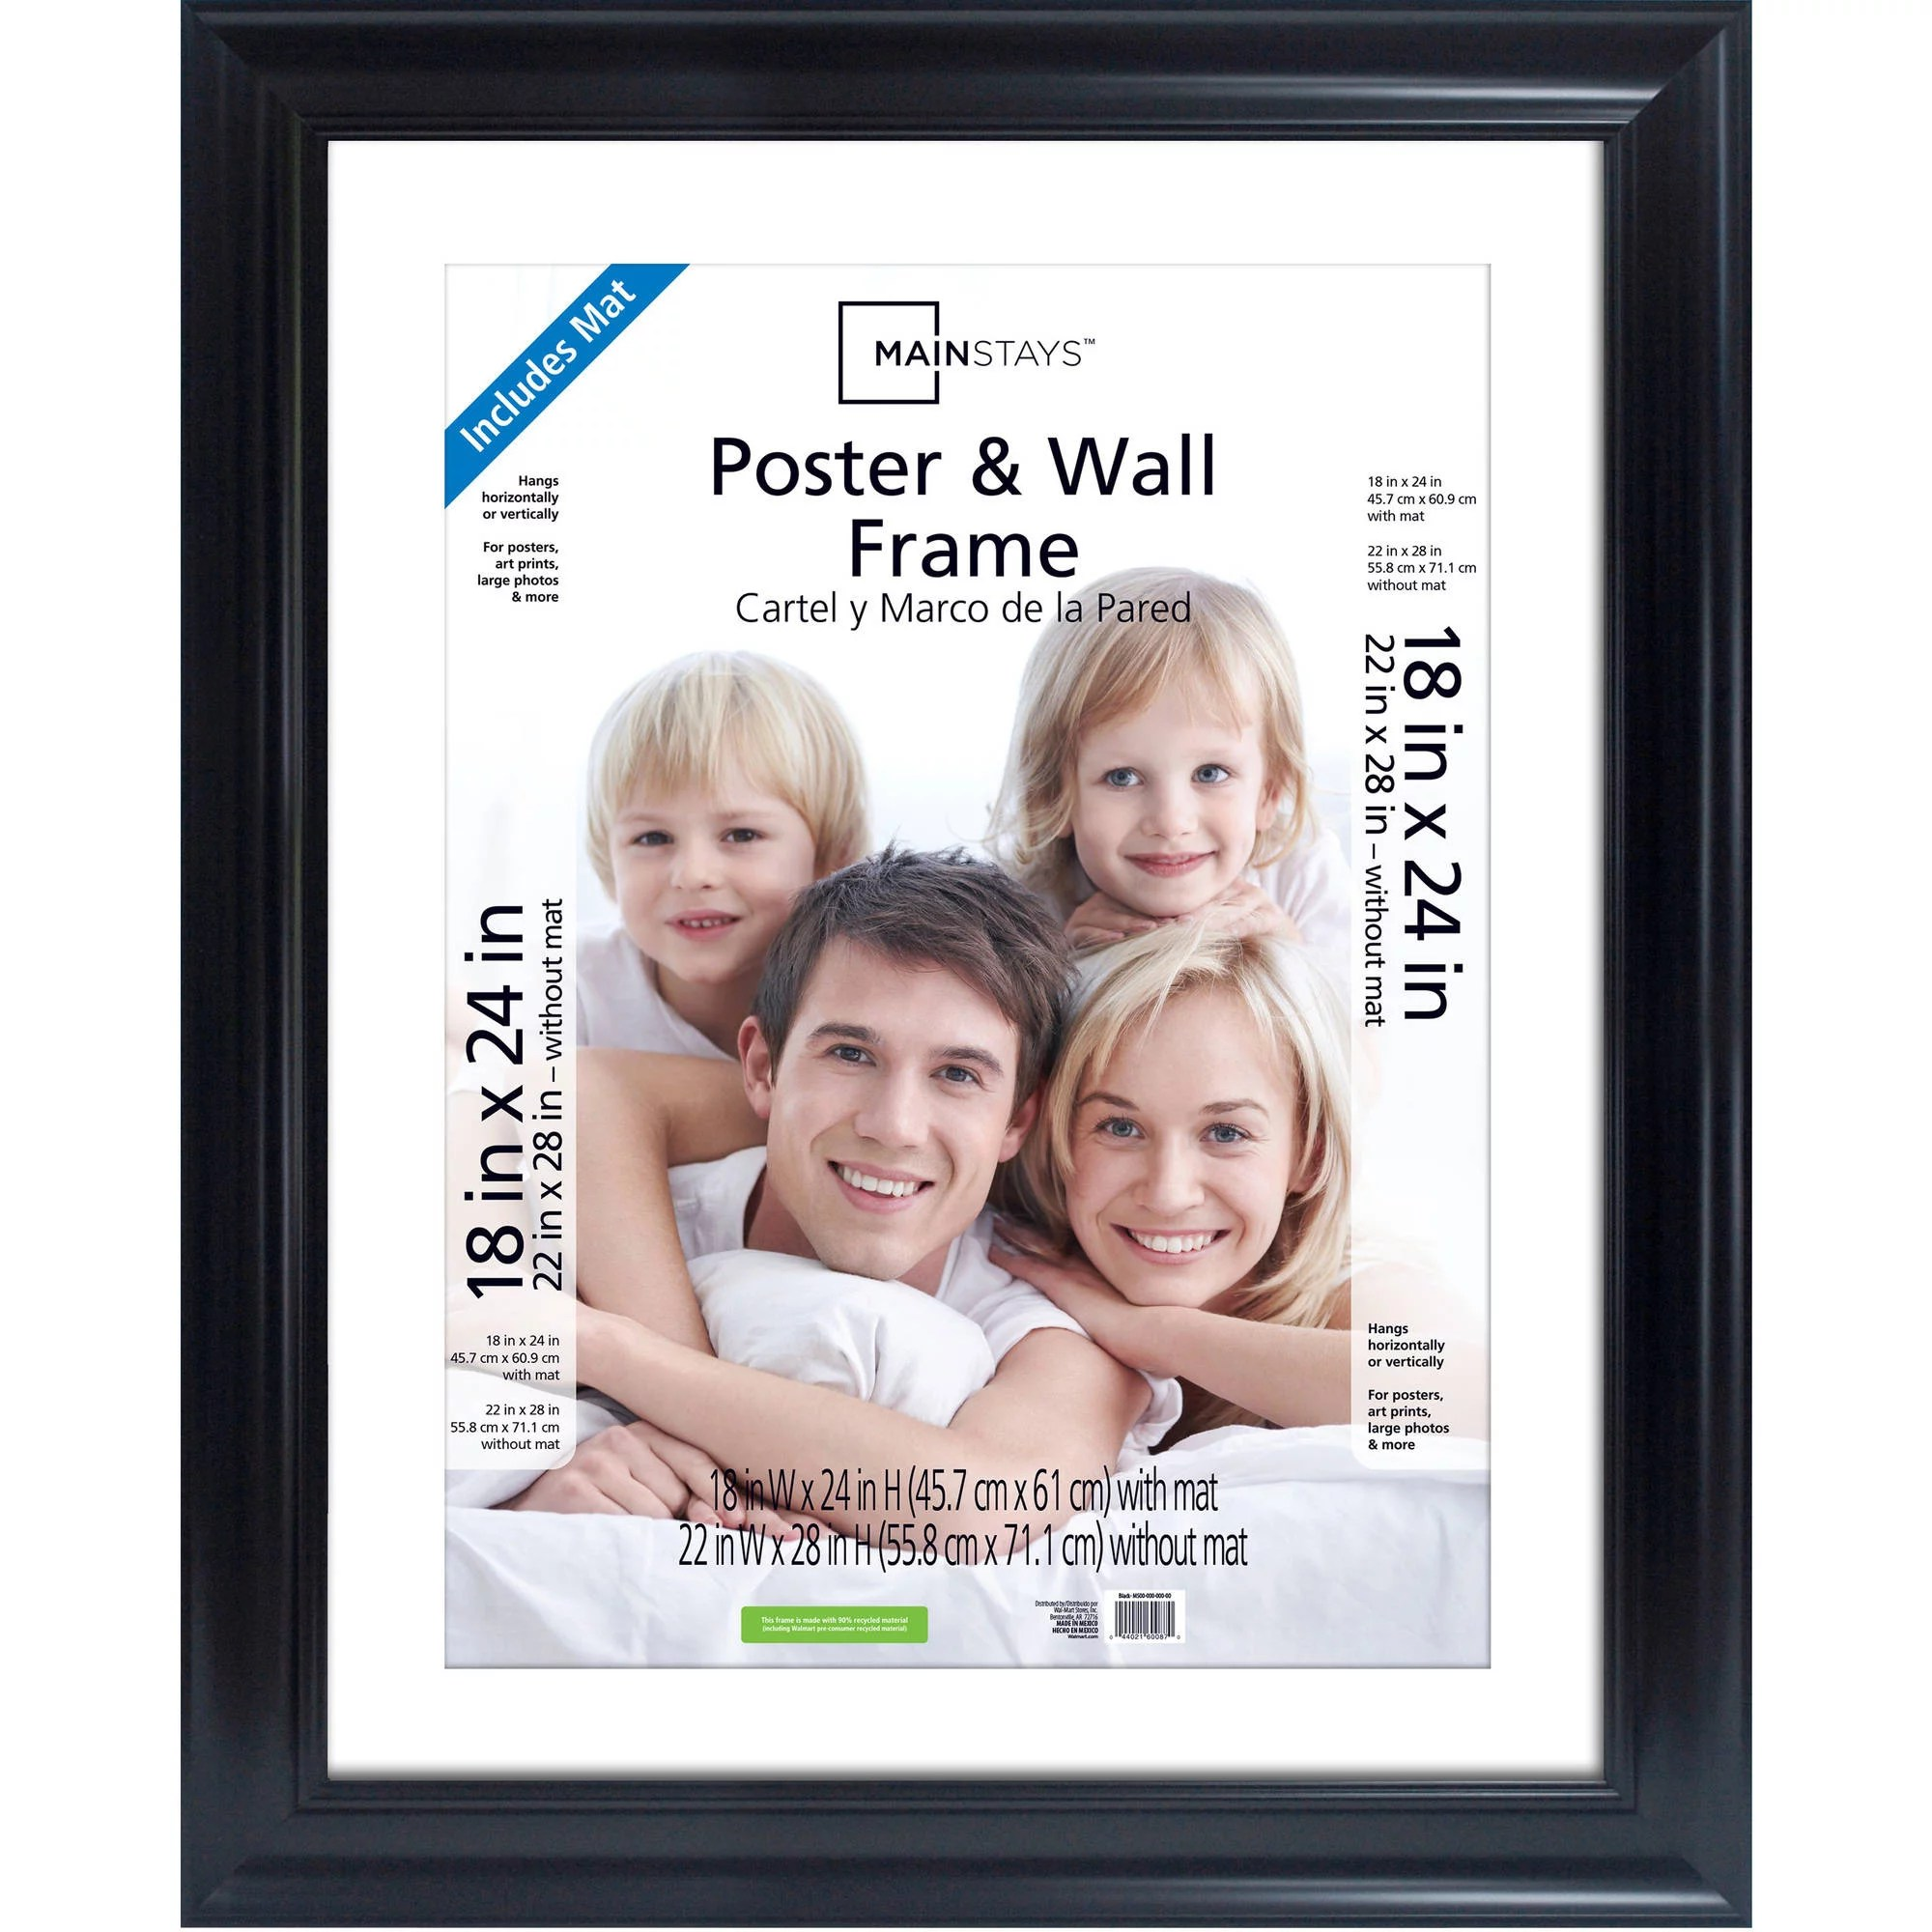 Foto 18x24 Mainstays 22x28 Matted To 18x24 Wide Poster And Picture Frame Black